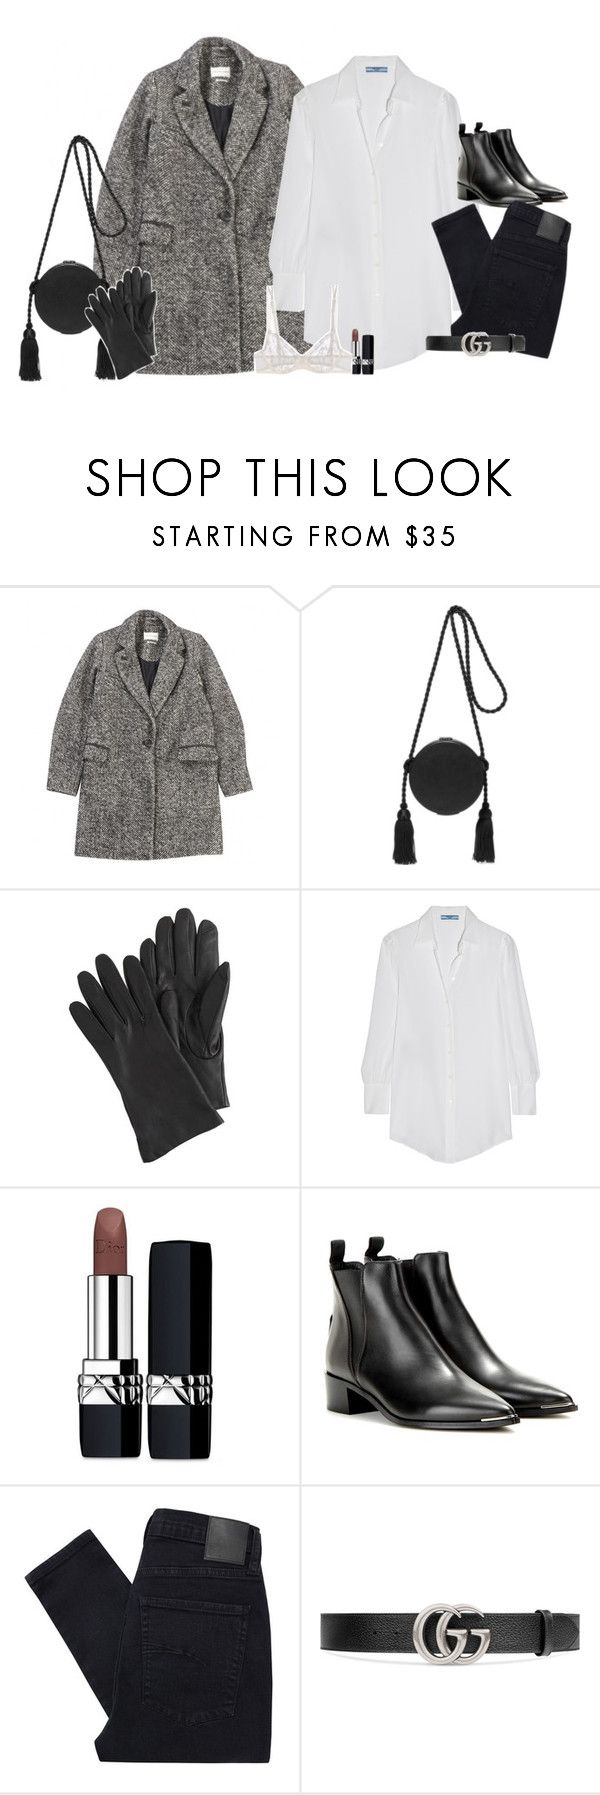 """""""Set 658 -"""" by xjulie1999 ❤ liked on Polyvore featuring Étoile Isabel Marant, Hillier Bartley, J.Crew, Prada, Christian Dior, Acne Studios, Nobody Denim, Gucci and La Perla"""